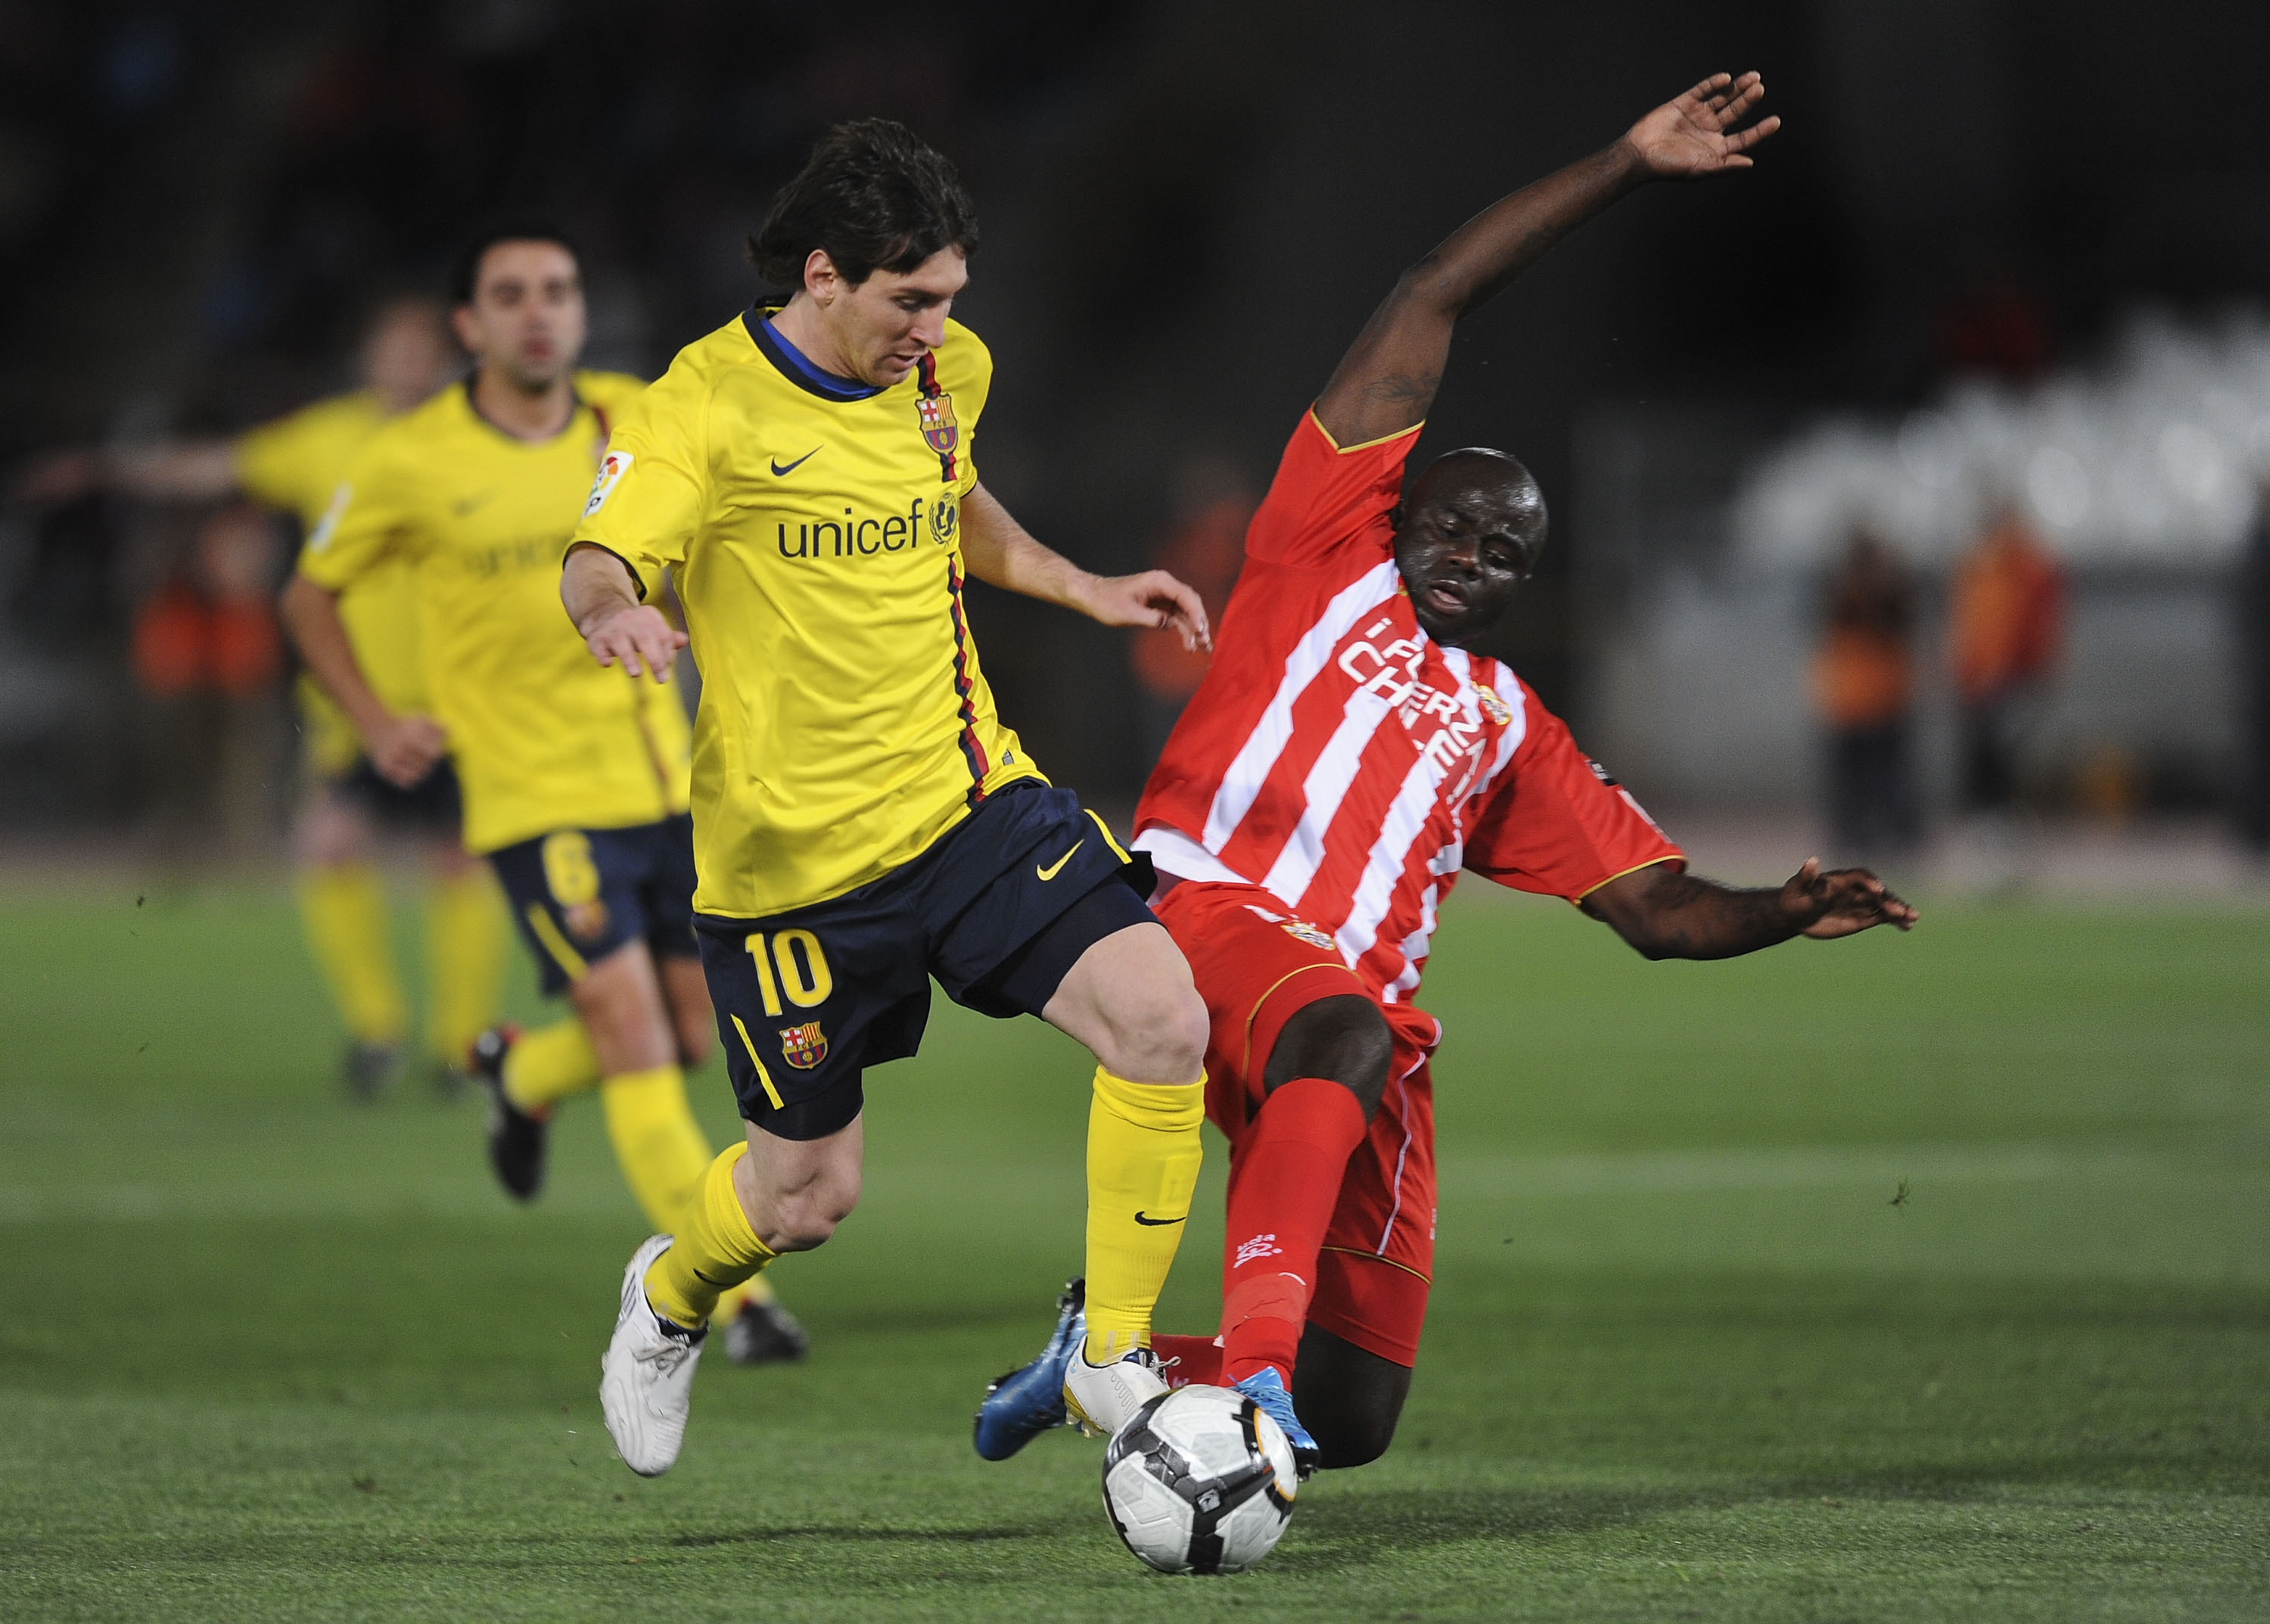 Conbative midfielder Modeste M'Bami will need to use his experience to stop the likes of Leo Messi running his Almeria team off the park